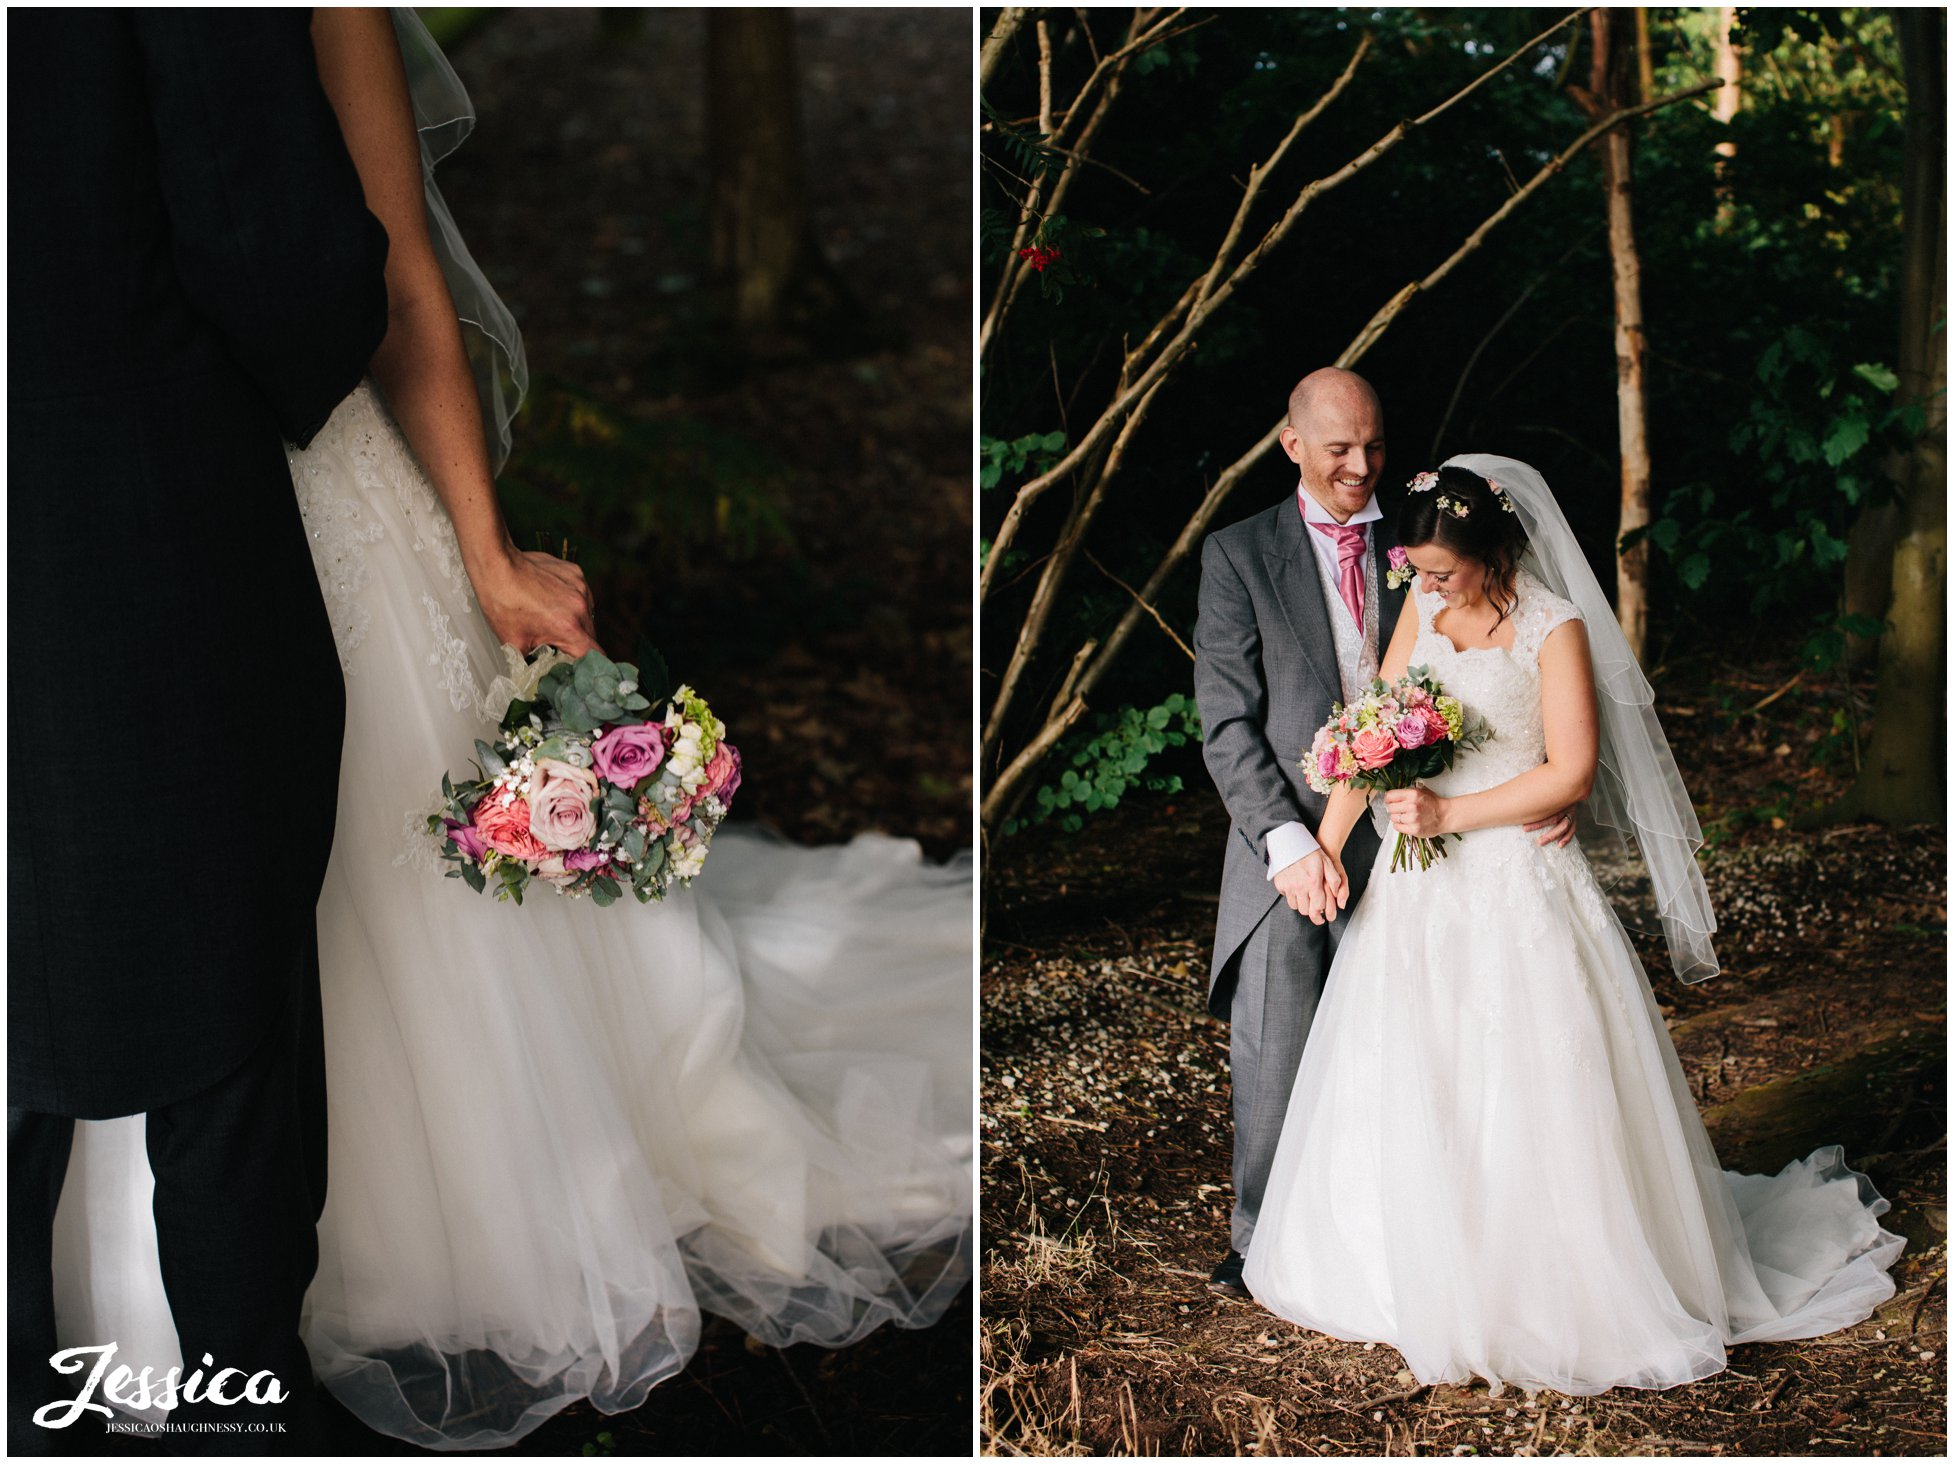 photographs of the bride & groom in the forest at harthill weddings